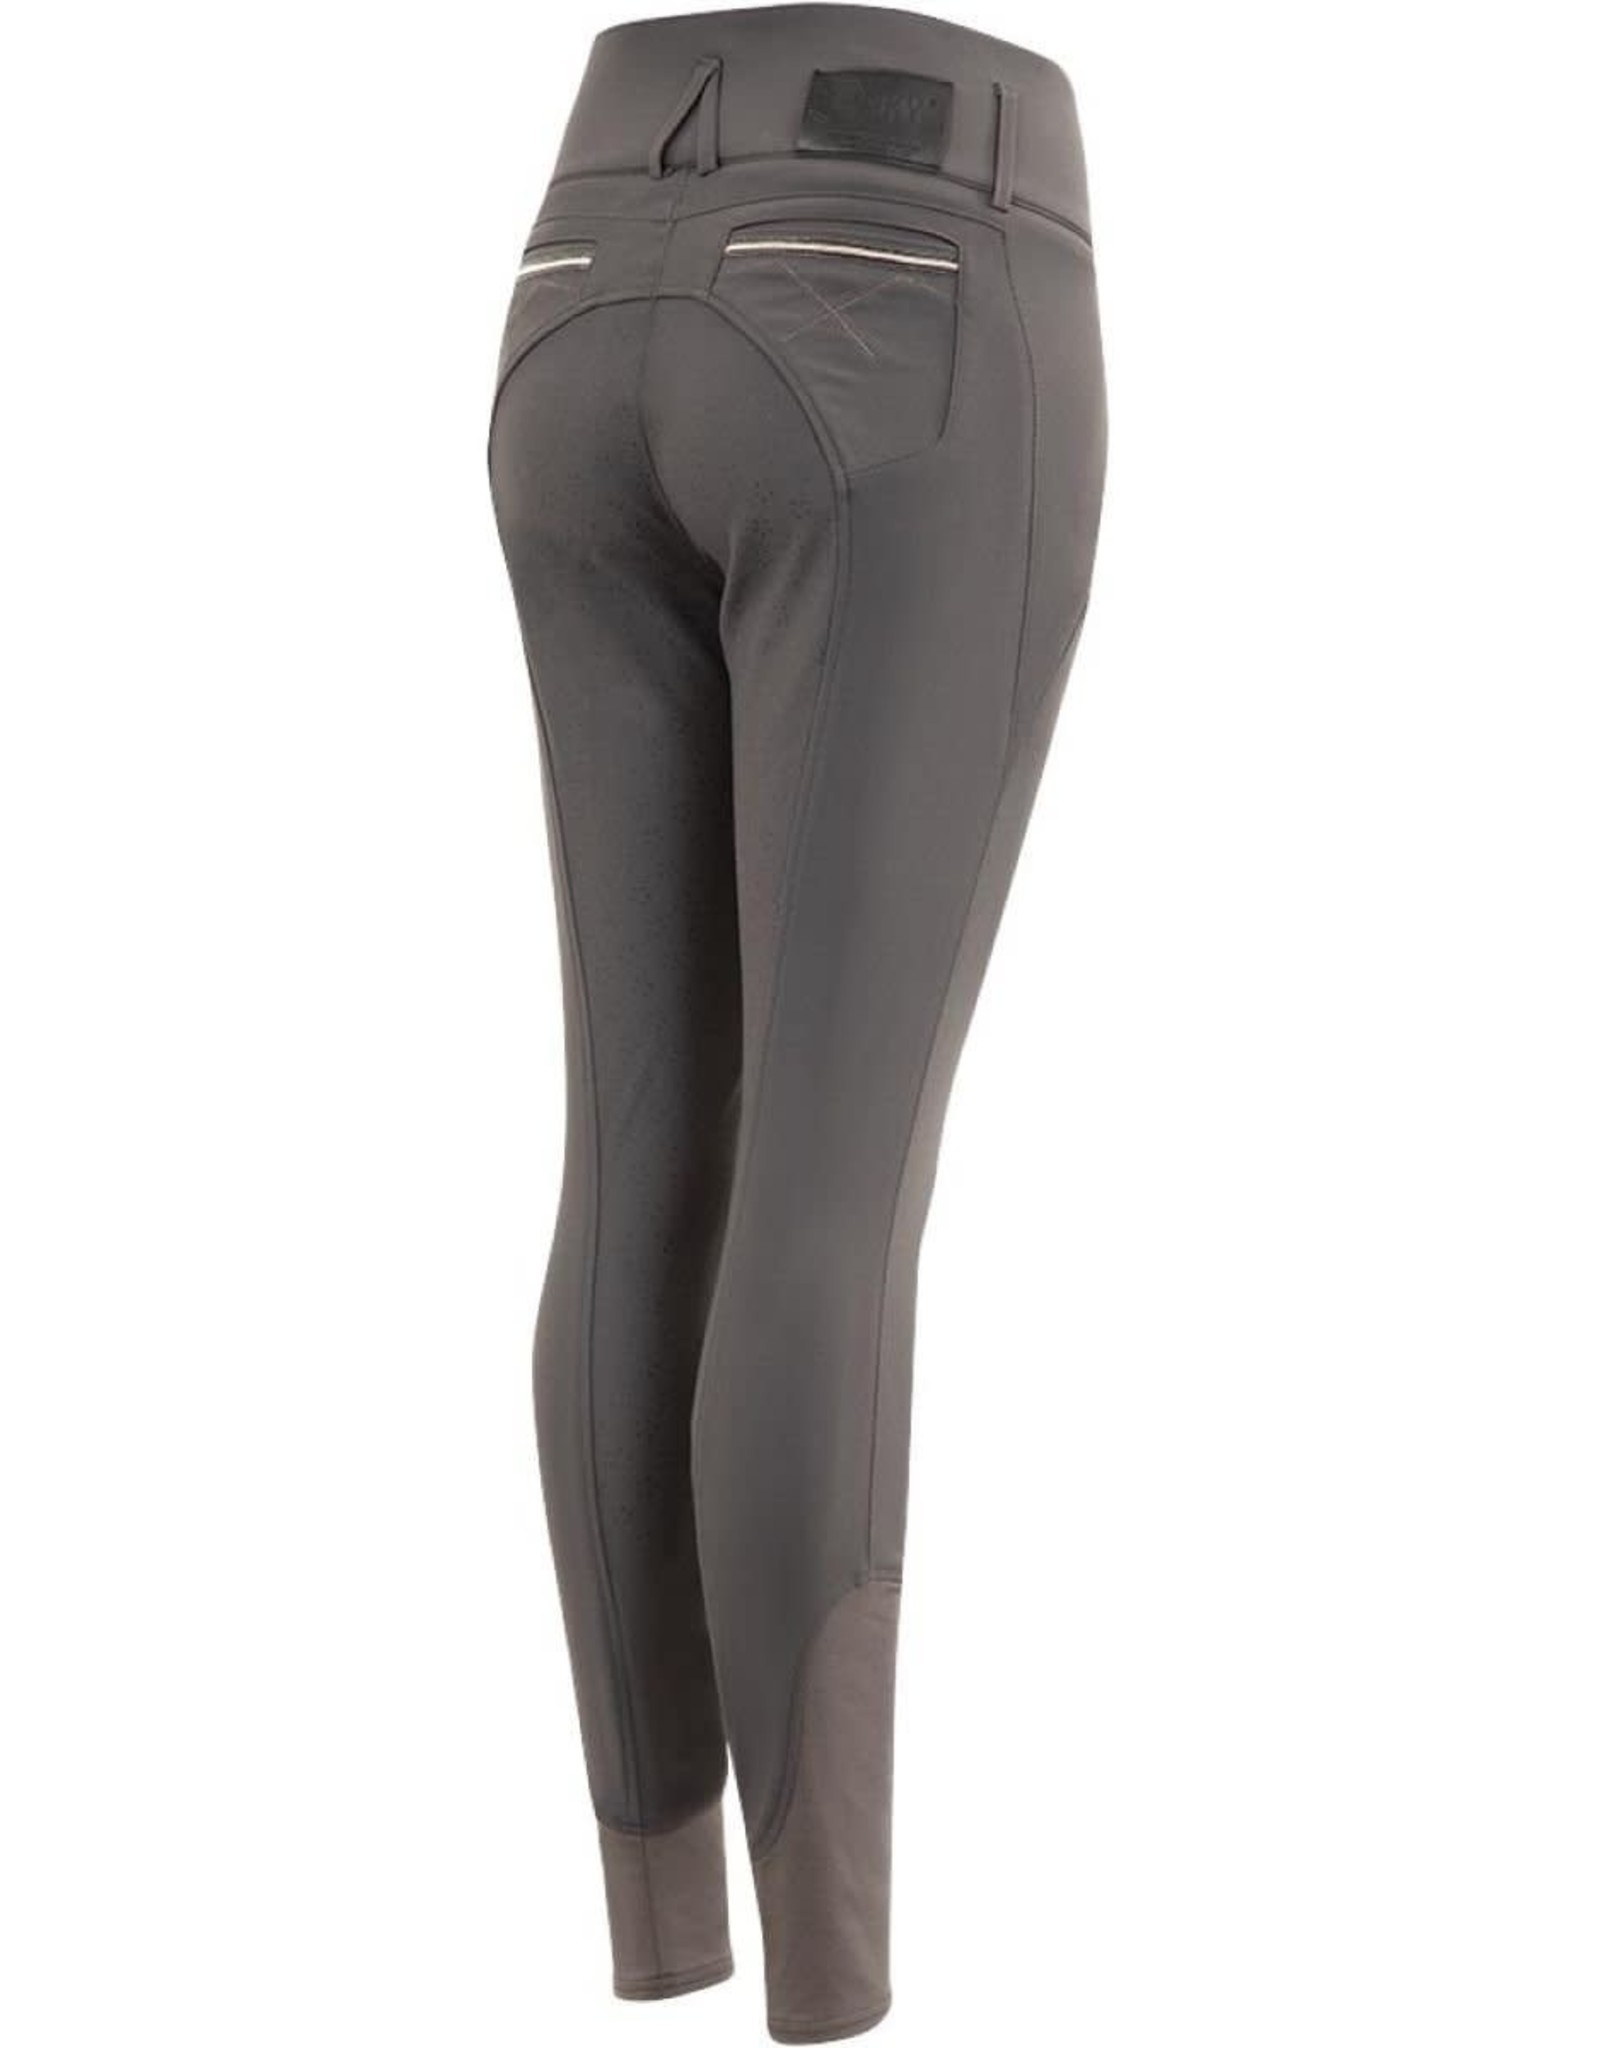 ANKY TAPE BRANDED SILICONE SEAT BREECHES